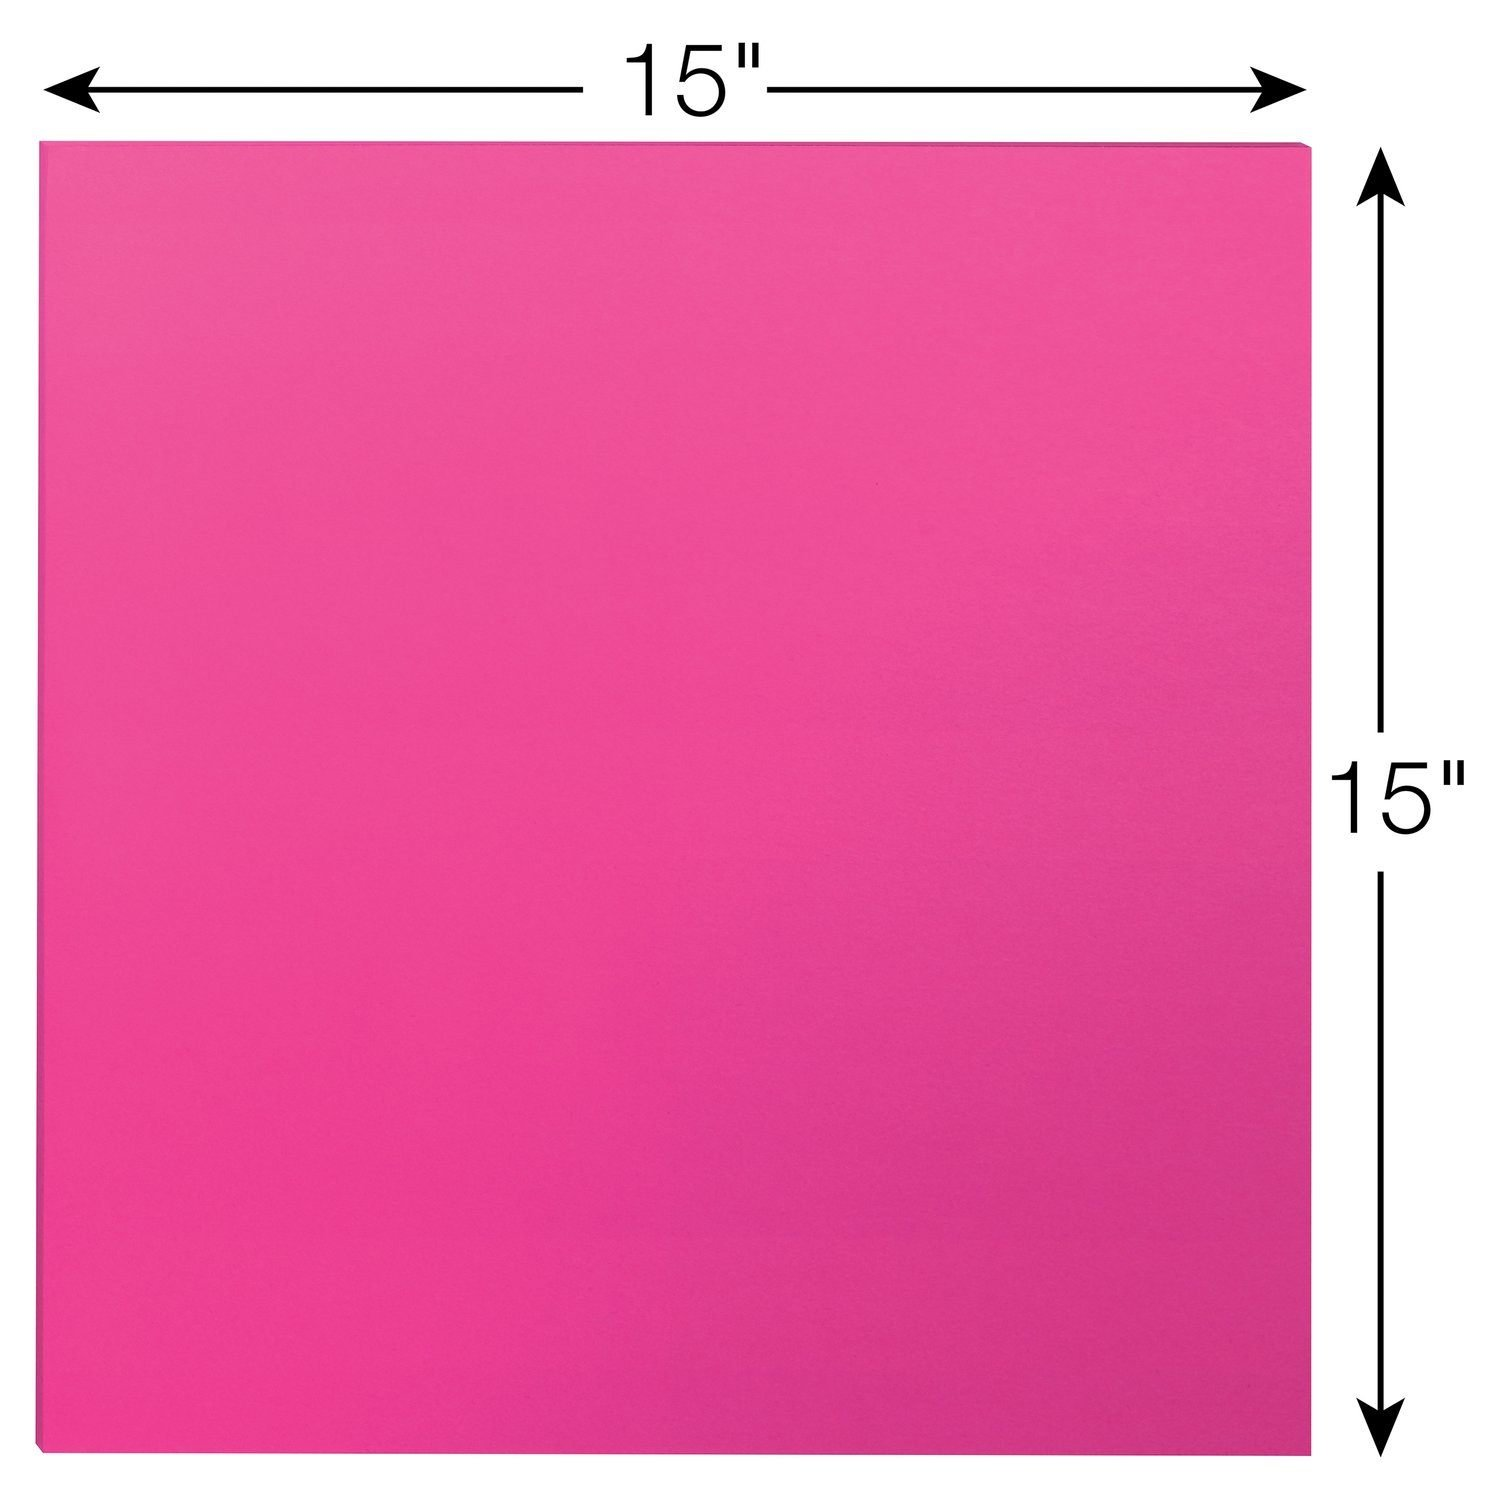 Post-it Big Pad, 15 in x 15 in, Bright Pink, 30 Sheets/Pad (BP15P) by 3M (Image #2)